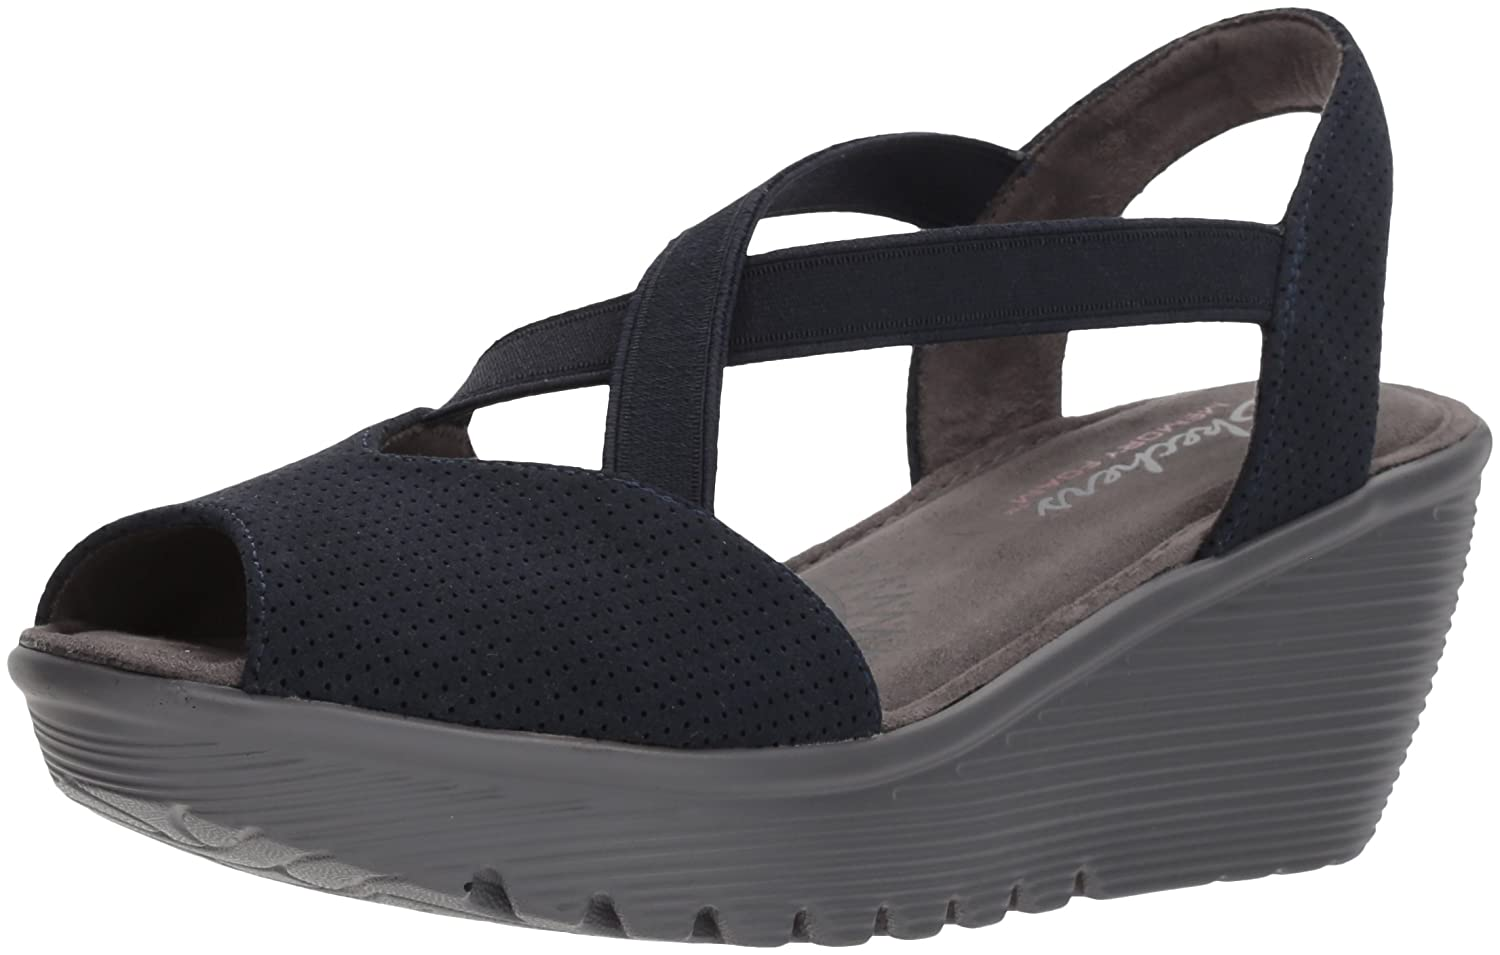 3f2093b18b3f Skechers womens parallel piazza peep toe gored slingback wedge sandal  platforms wedges jpg 1500x955 Skechers open